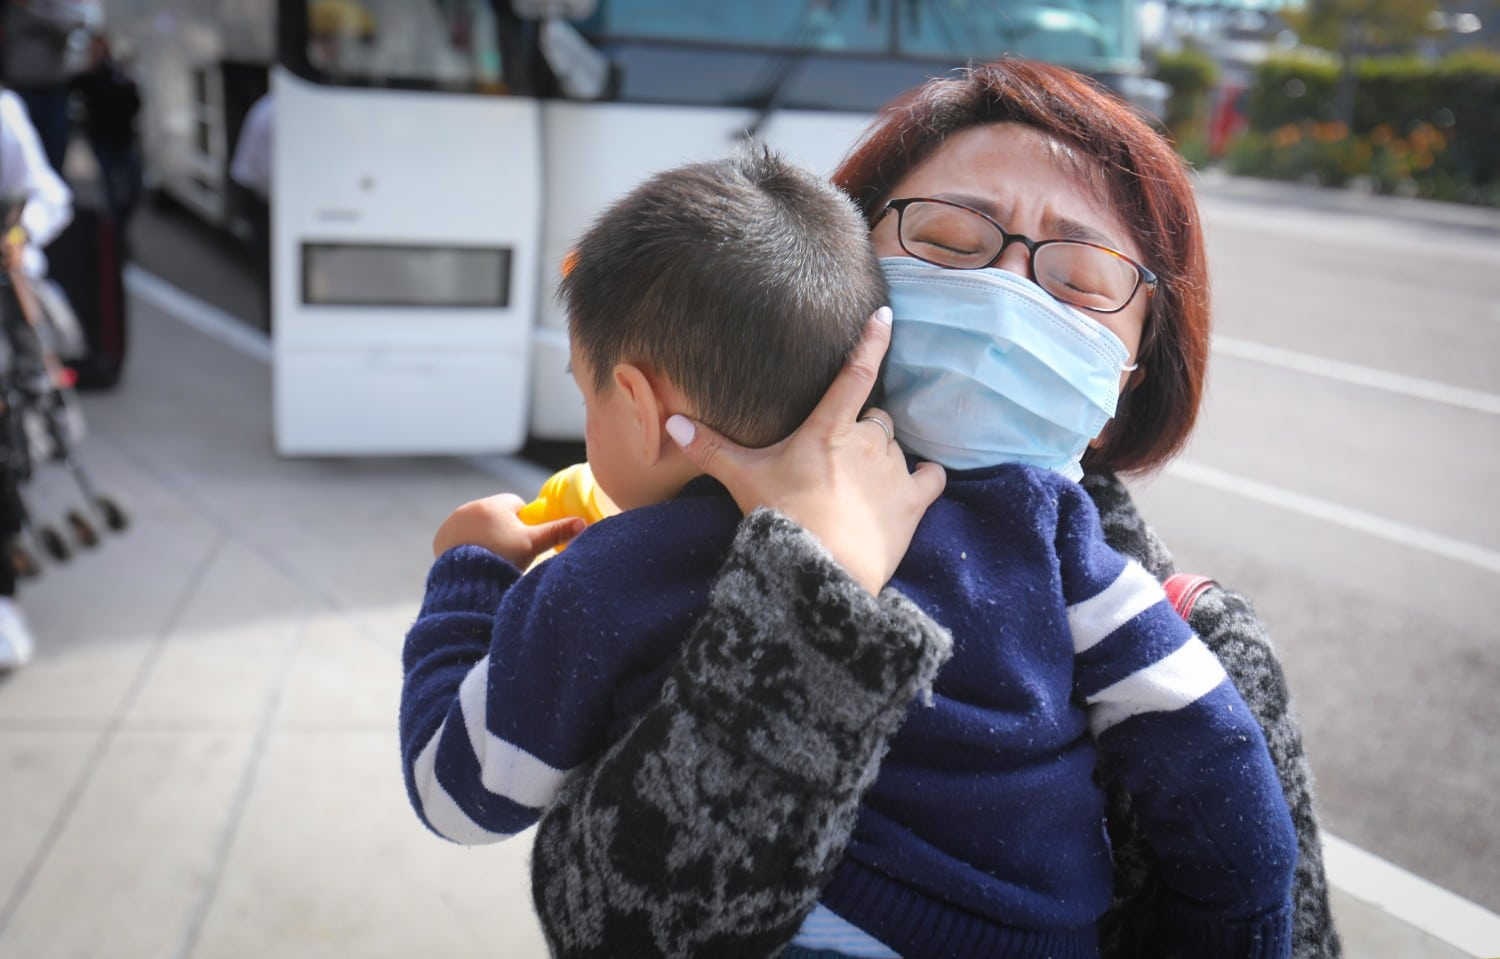 CA is monitoring 8,400 residents for coronavirus and here's what else